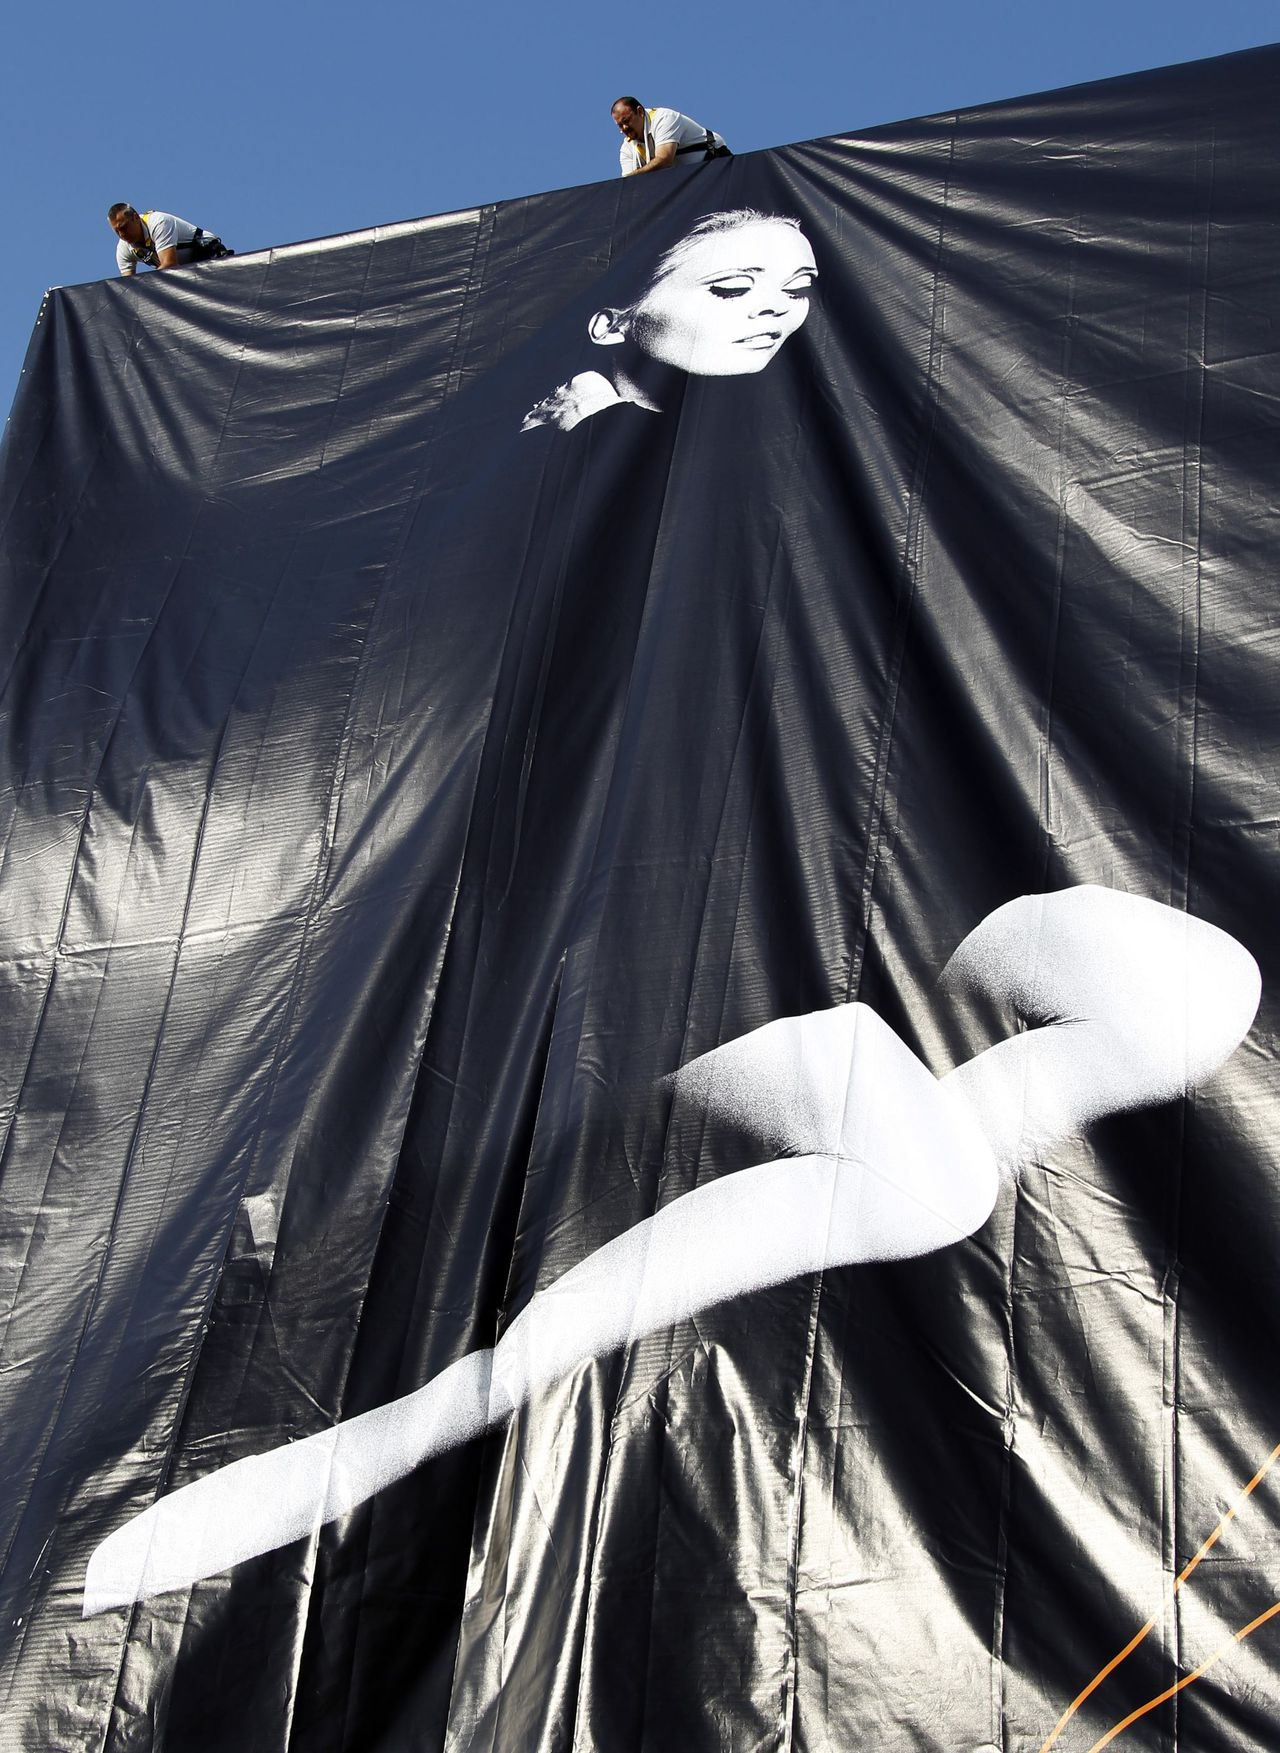 Workers set up a giant canvas of the official poster of the 64th Cannes Film Festival showing U.S. actress Faye Dunaway, on the facade of the Festival Palace in Cannes May 9, 2011. The Cannes Film Festival runs from May 11 to 22. REUTERS/Eric Gaillard (FRANCE - Tags: ENTERTAINMENT)